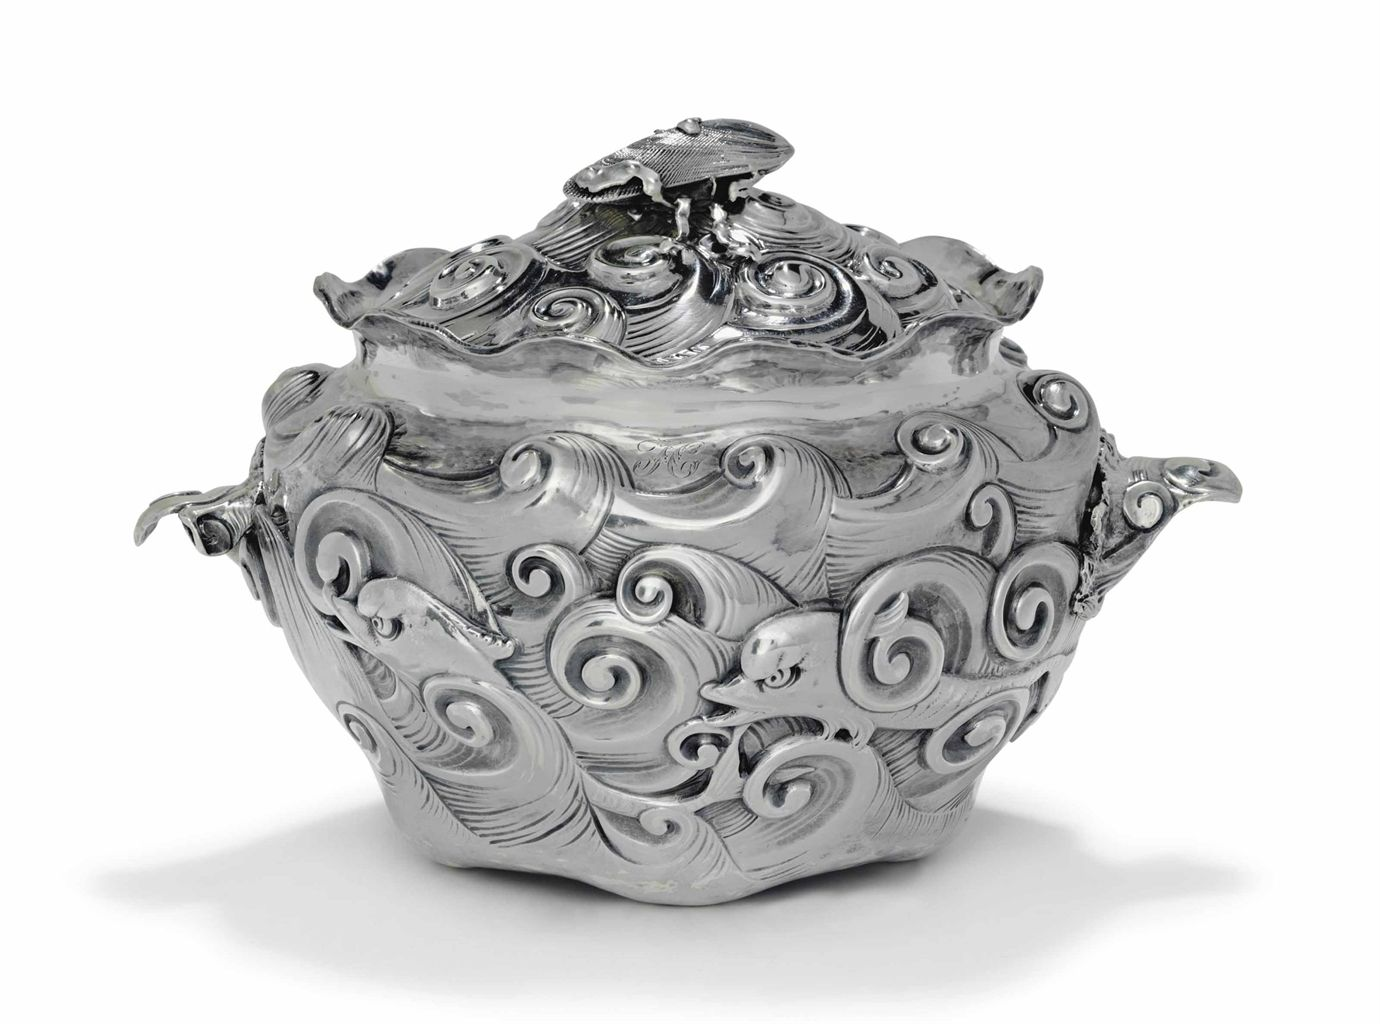 A SILVER TUREEN AND COVER MARK OF GORHAM MFG. CO., PROVIDENCE, 1883 Monogramed, marked under base, pattern '295' 11 ½ in. long; 45 oz. 10 dwt. (1,421 gr.)